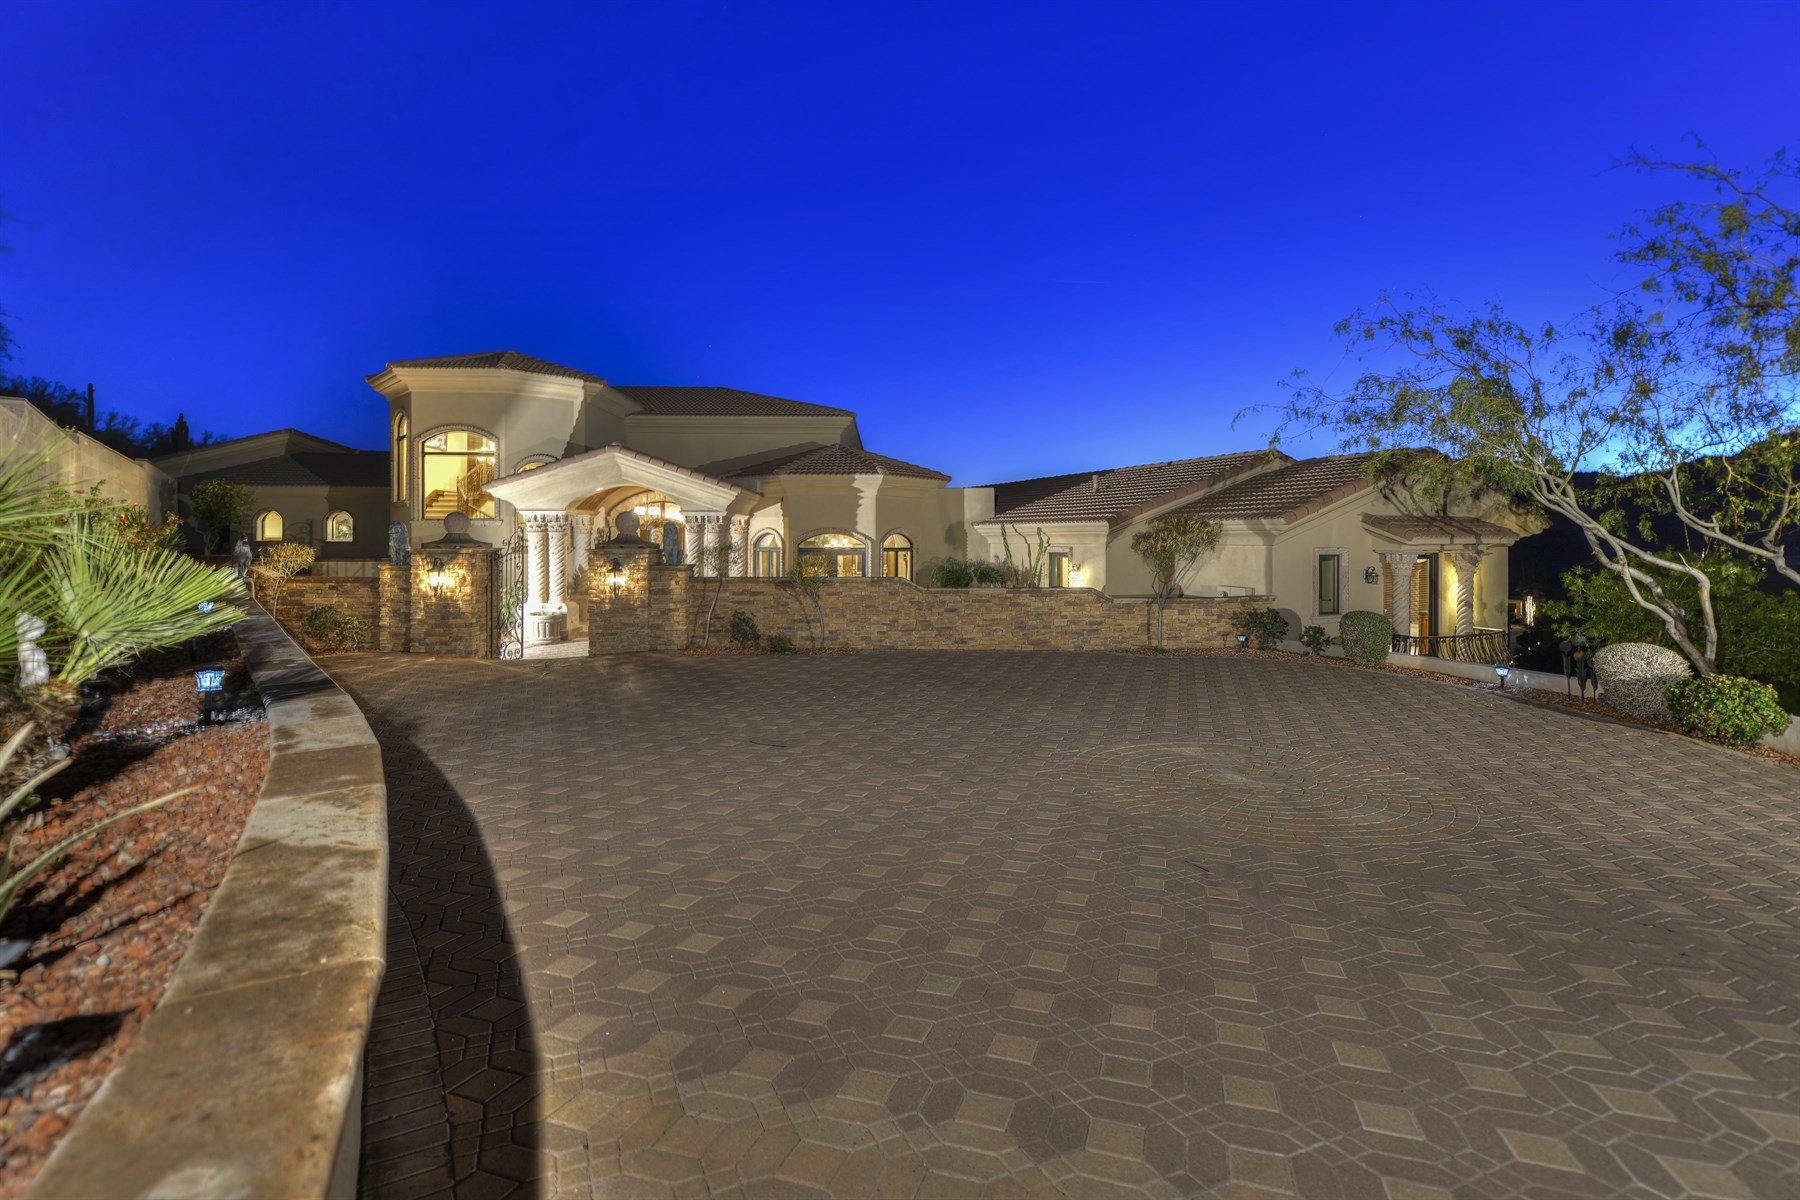 Nhà ở một gia đình vì Bán tại European-Inspired Private Hillside Estate with Sweeping Twinkling City Light Vie 7024 N Longlook Rd Paradise Valley, Arizona, 85253 Hoa Kỳ